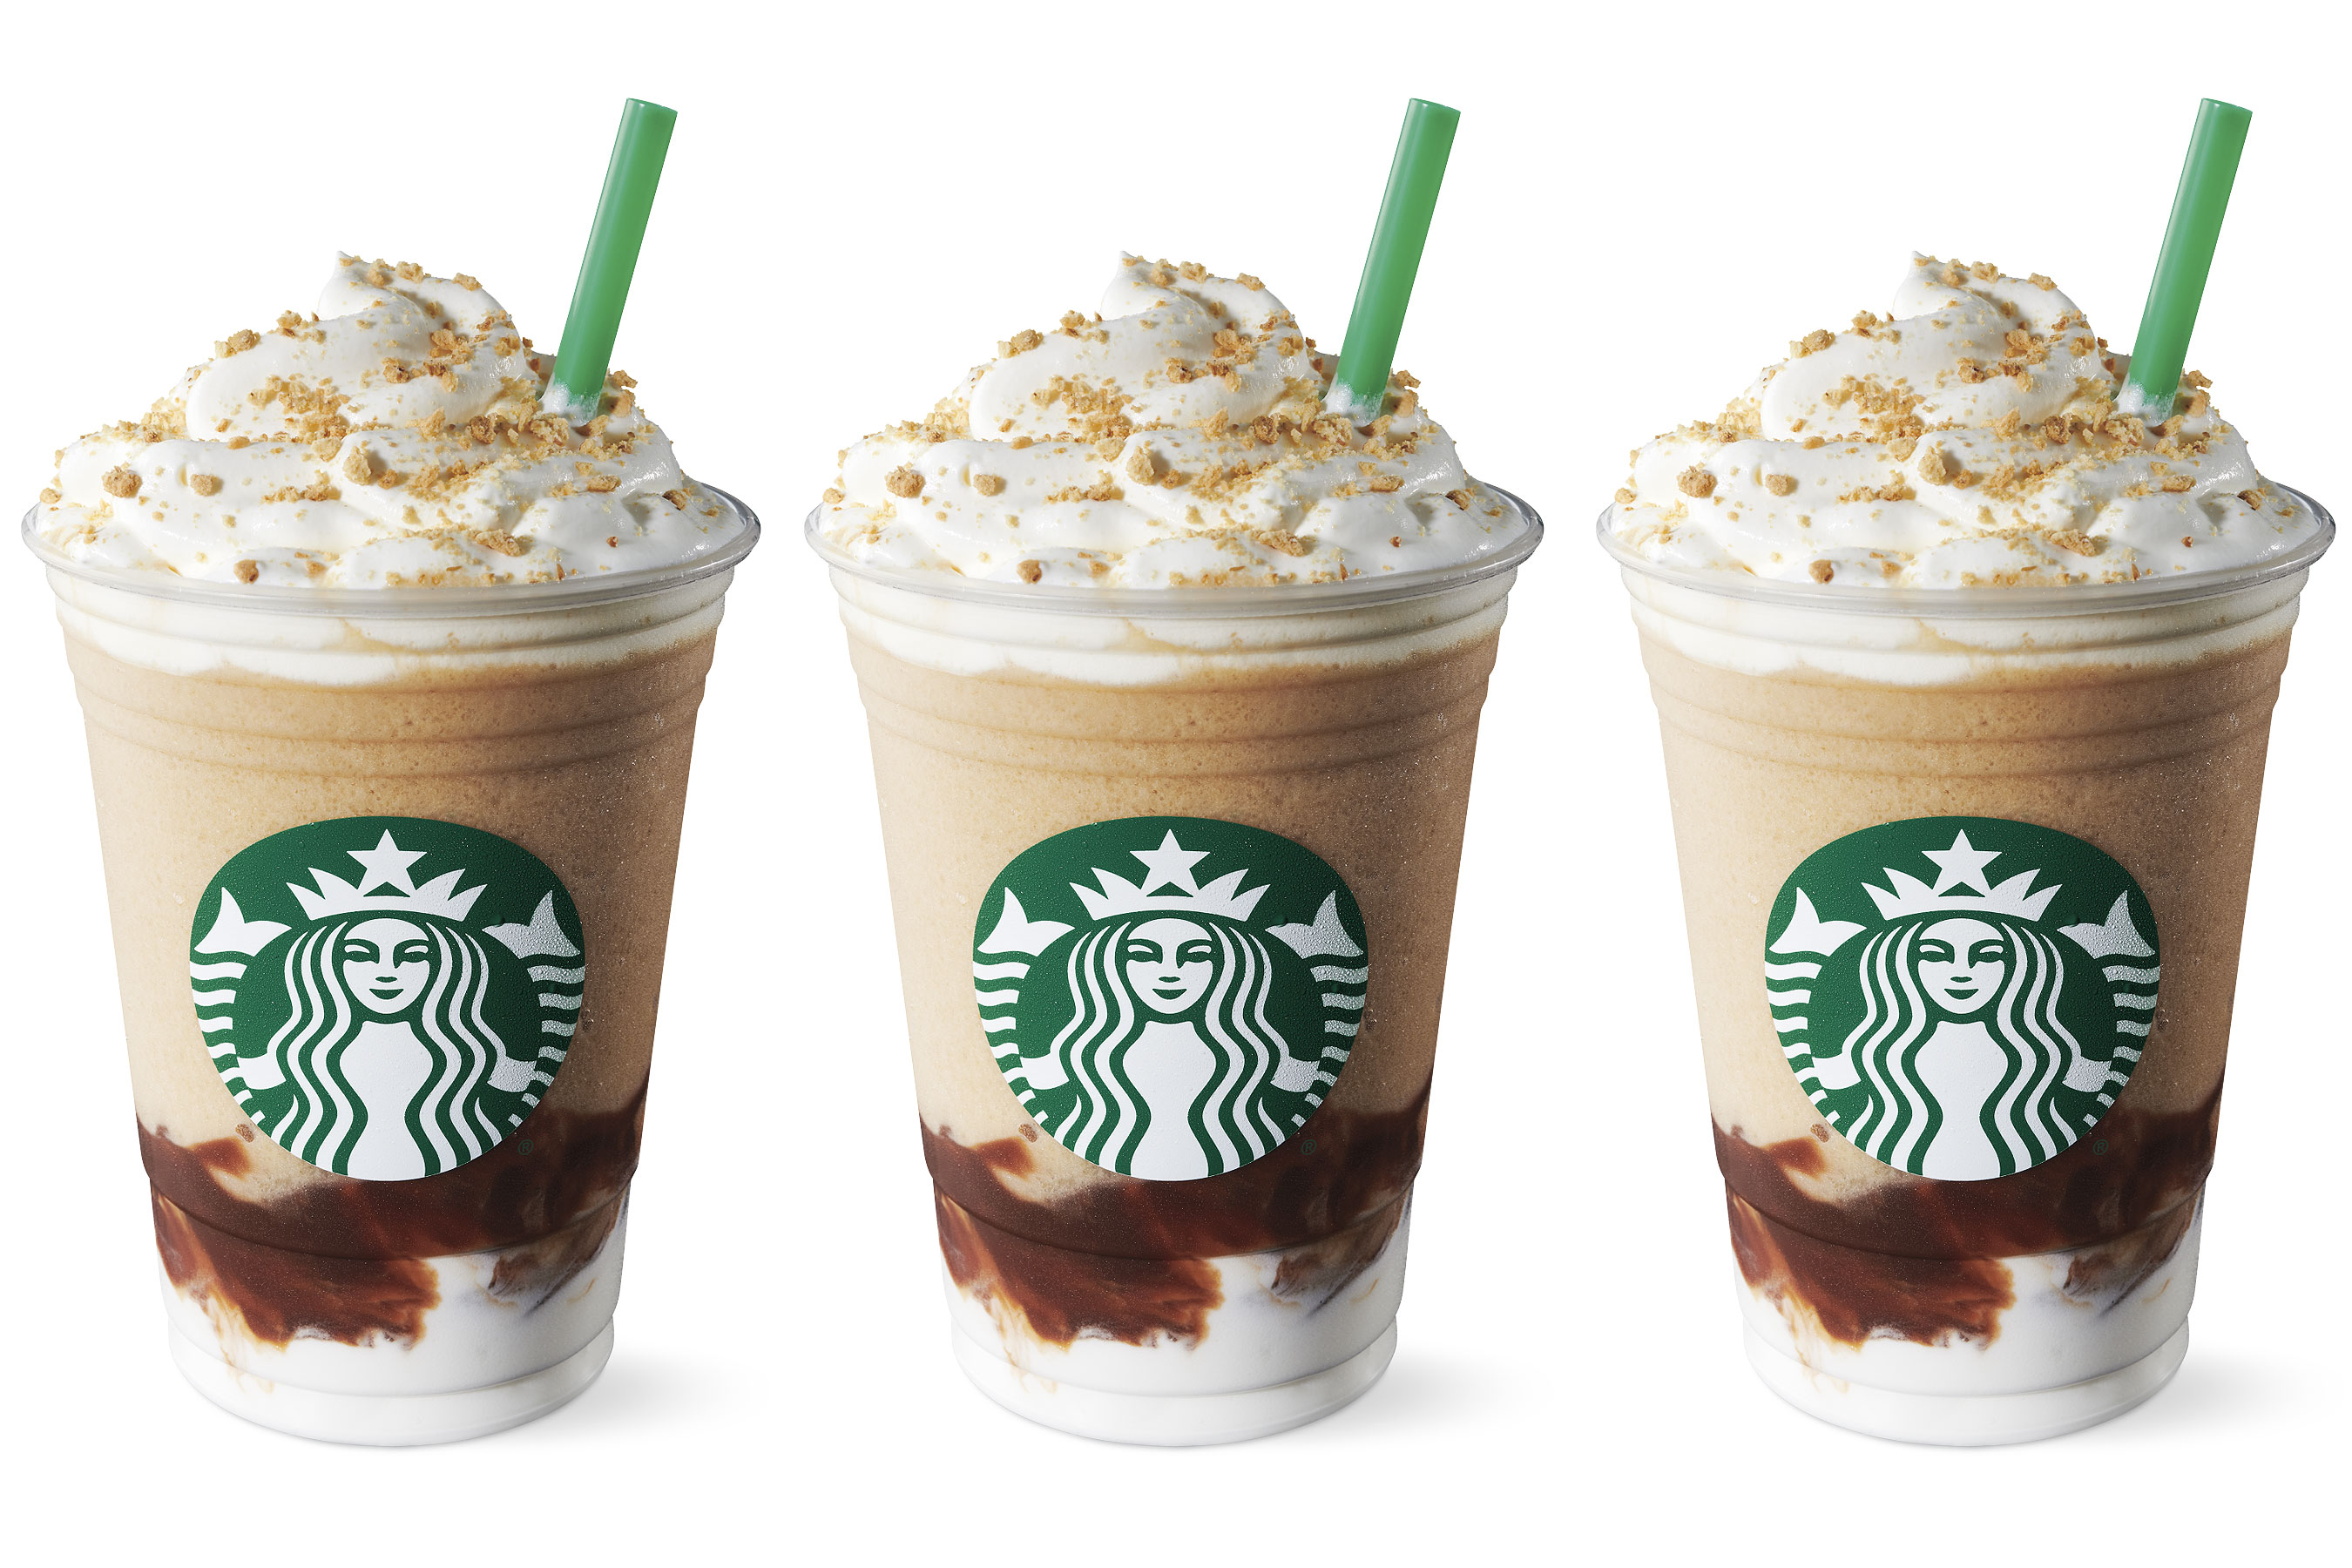 Starbucks Is Bringing Back the S'Mores Frappuccino After Discontinuing It Last Summer